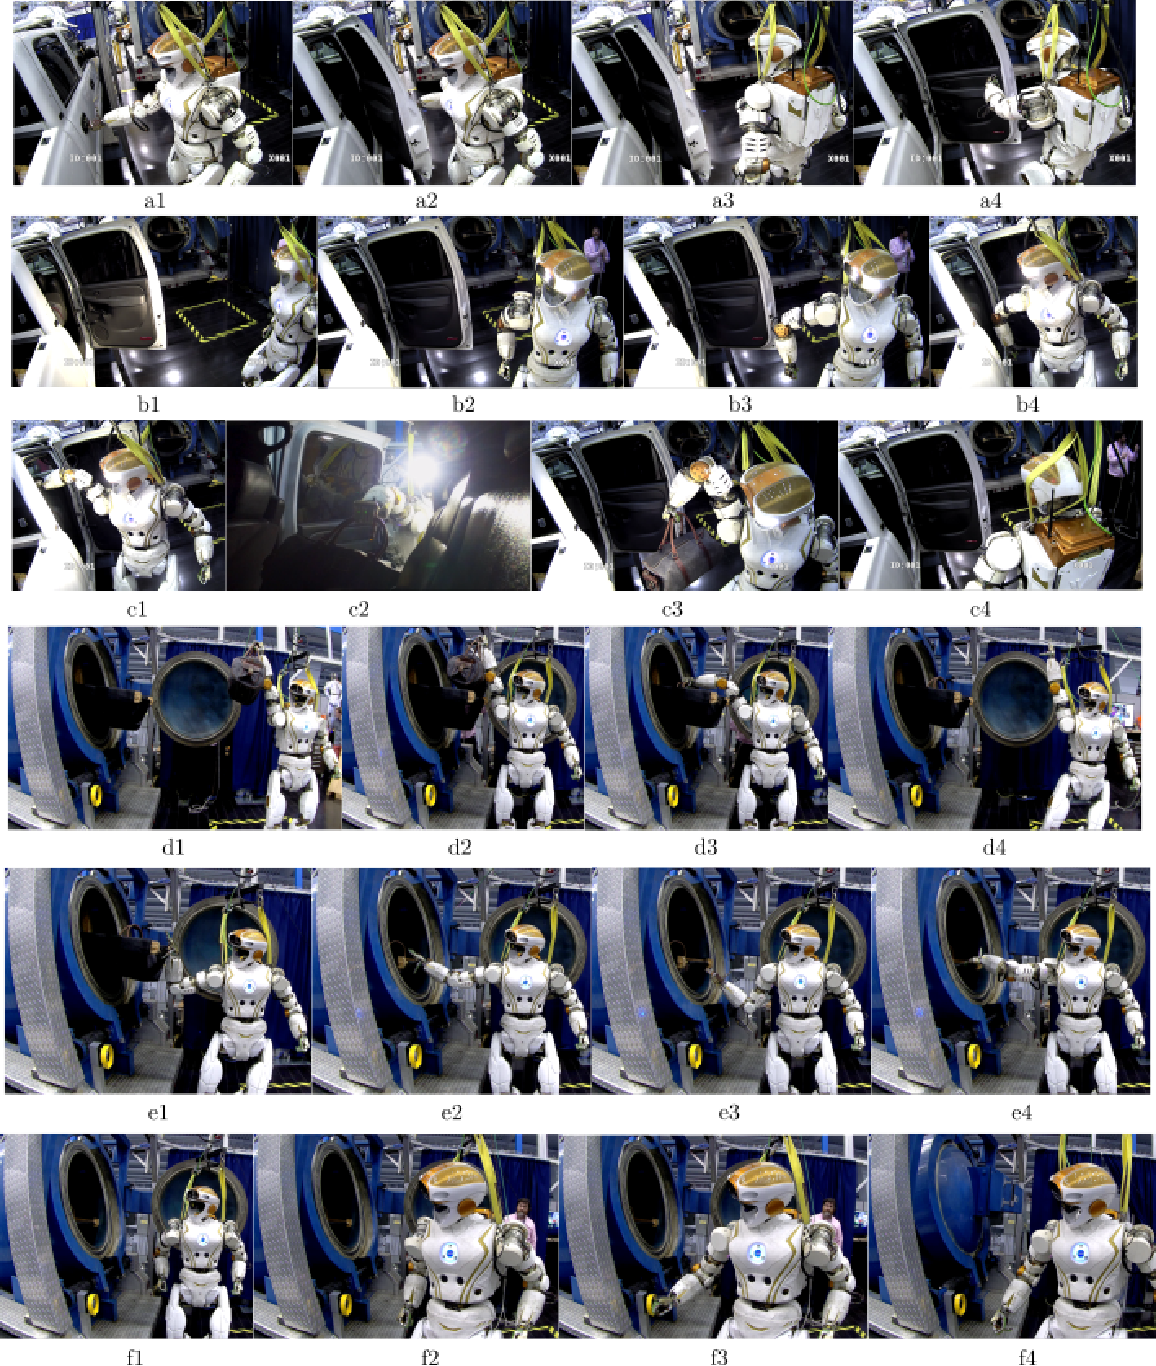 Figure 4 for Deploying the NASA Valkyrie Humanoid for IED Response: An Initial Approach and Evaluation Summary